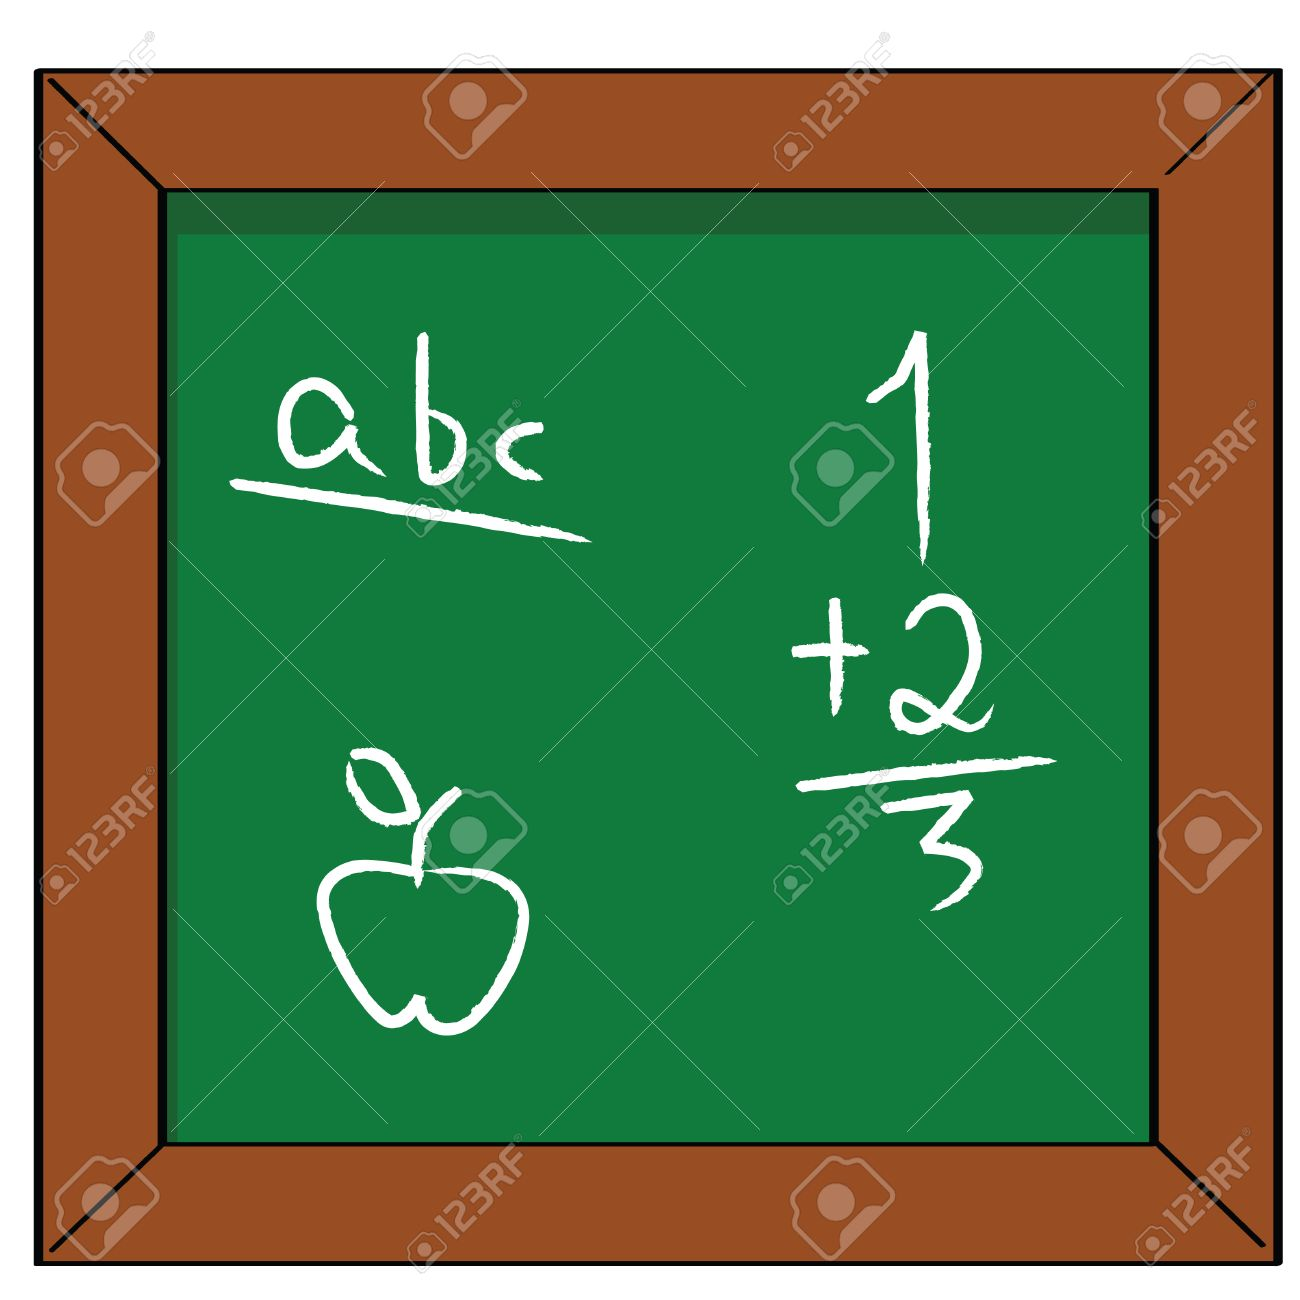 Worksheet Reading And Math reading about math laptuoso cartoon illustration of a school blackboard with some basic and math